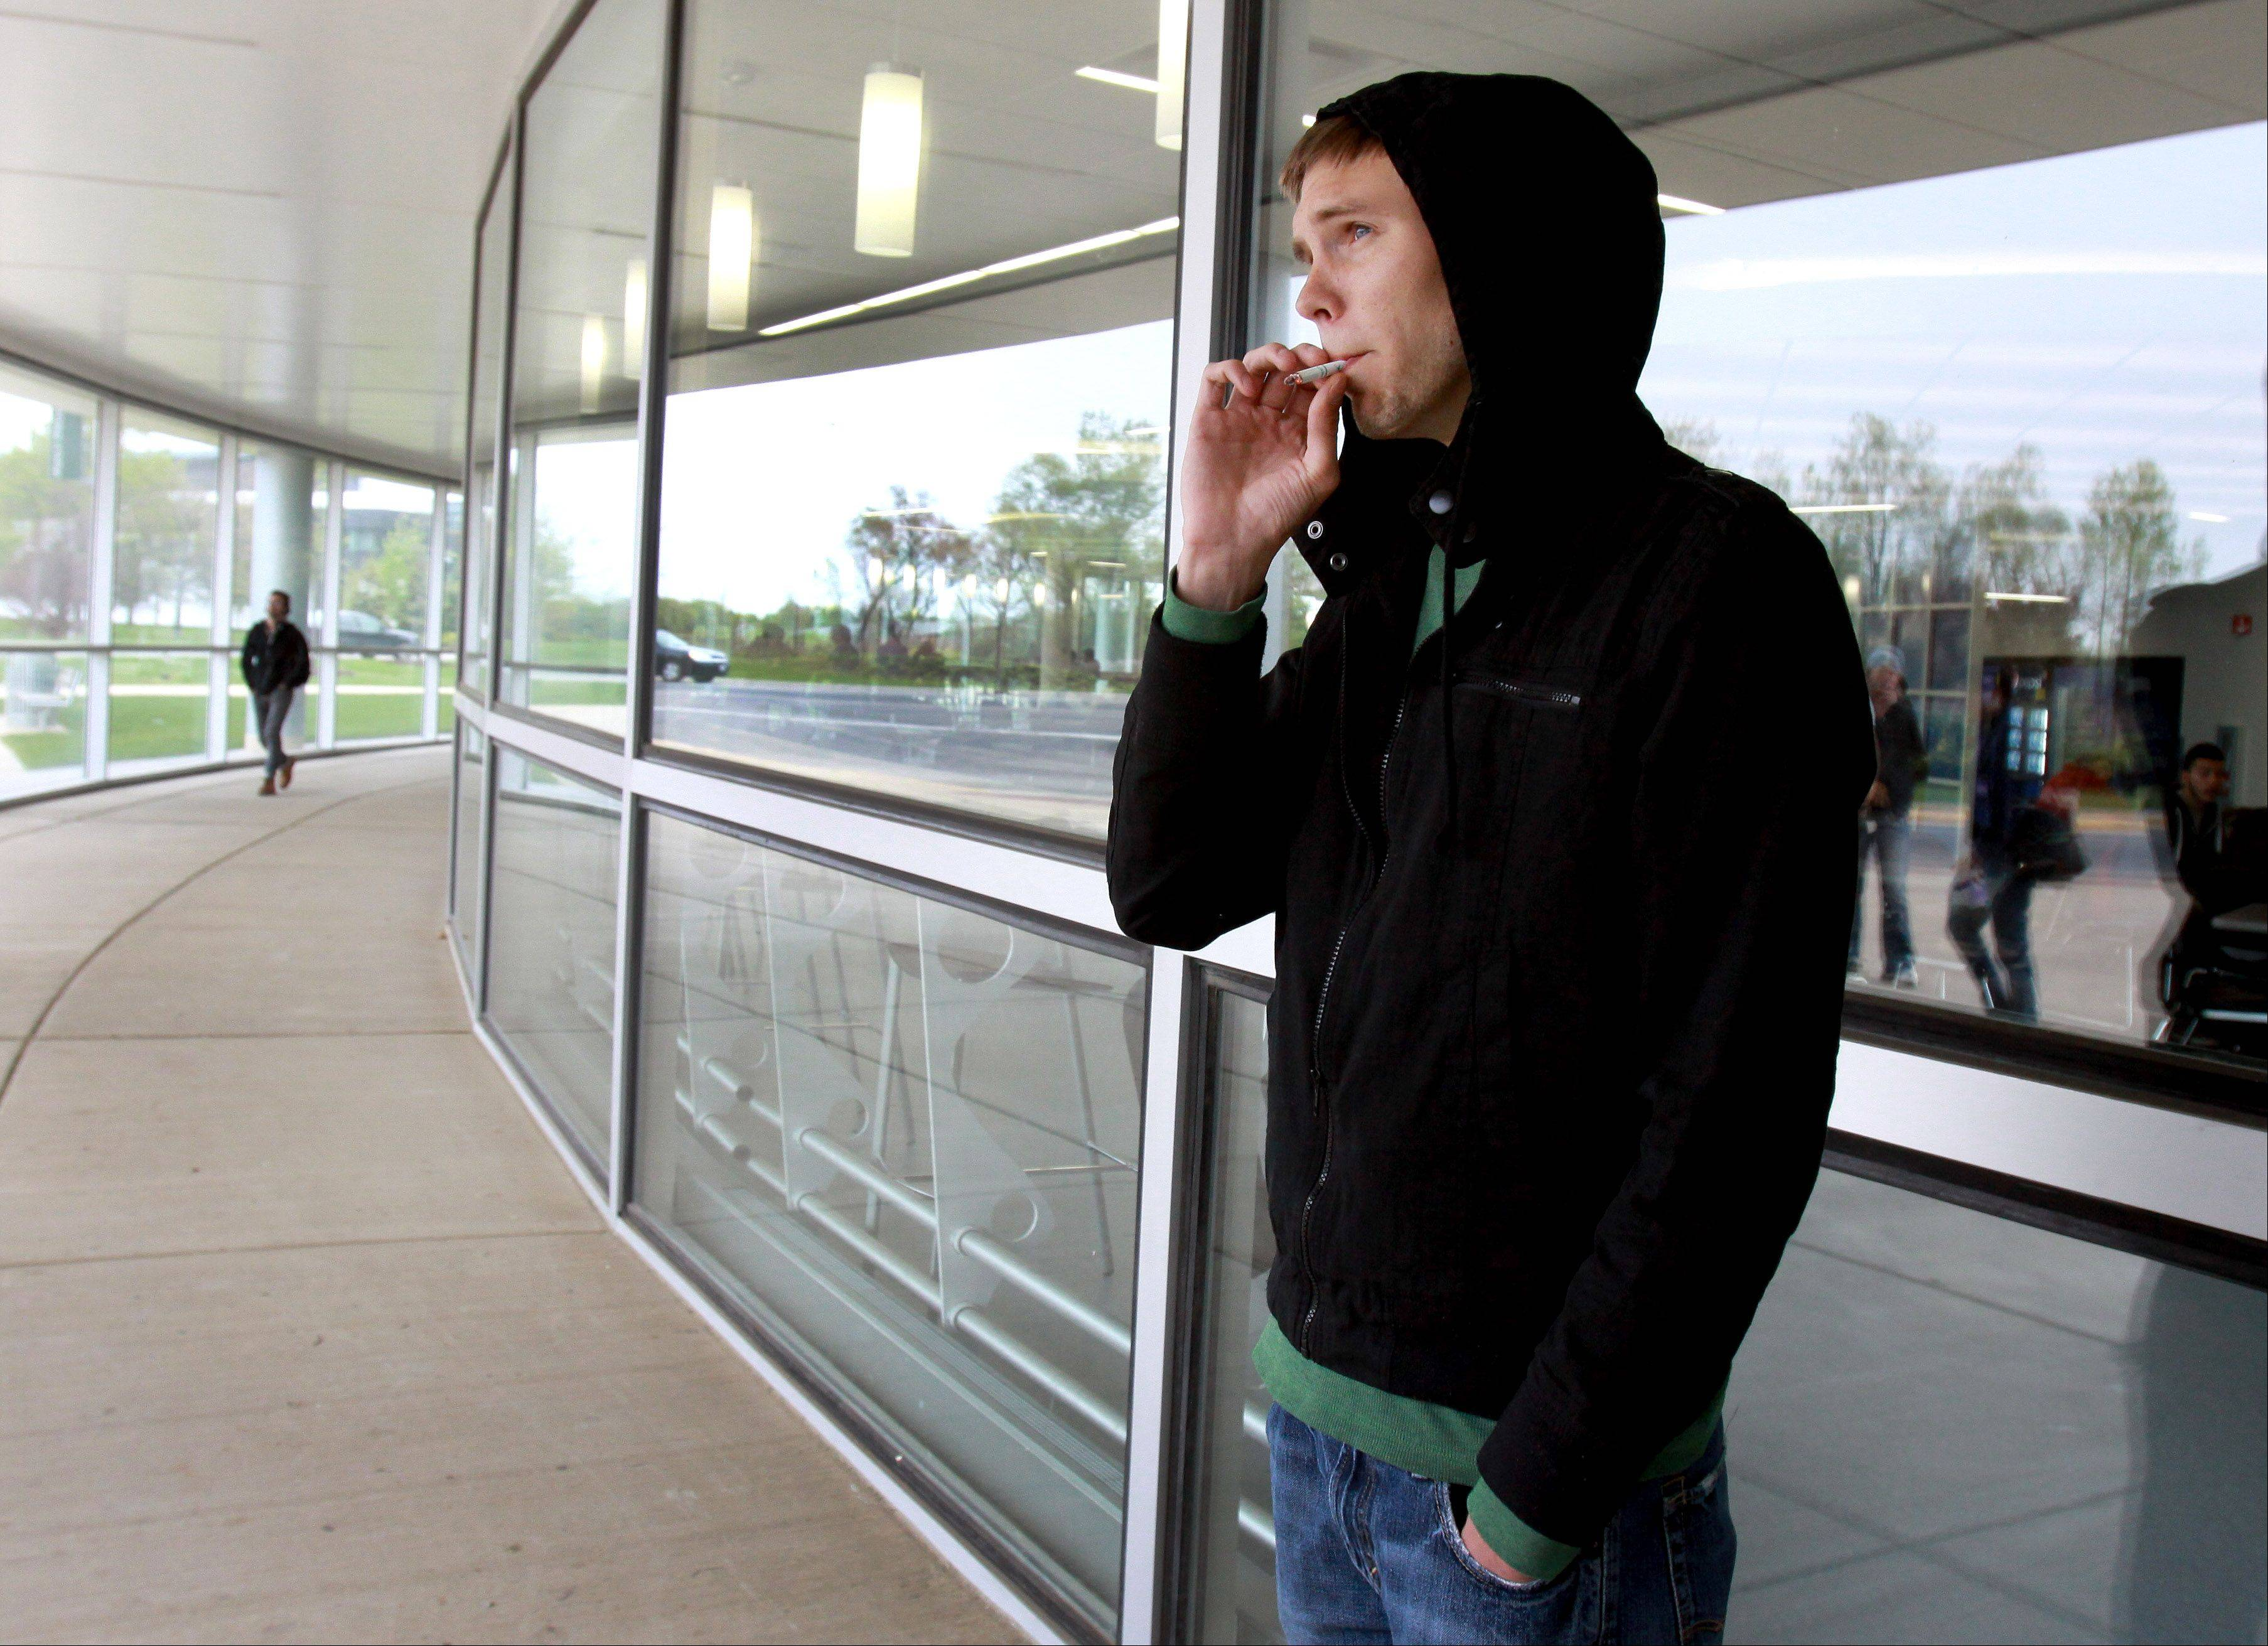 Robie Combs, a third-year student at College of DuPage, smokes outside the Student Resource Center on Friday. Combs says he's opposed to a collegewide smoking ban that goes into effect in August; instead he would have preferred designated smoking areas.